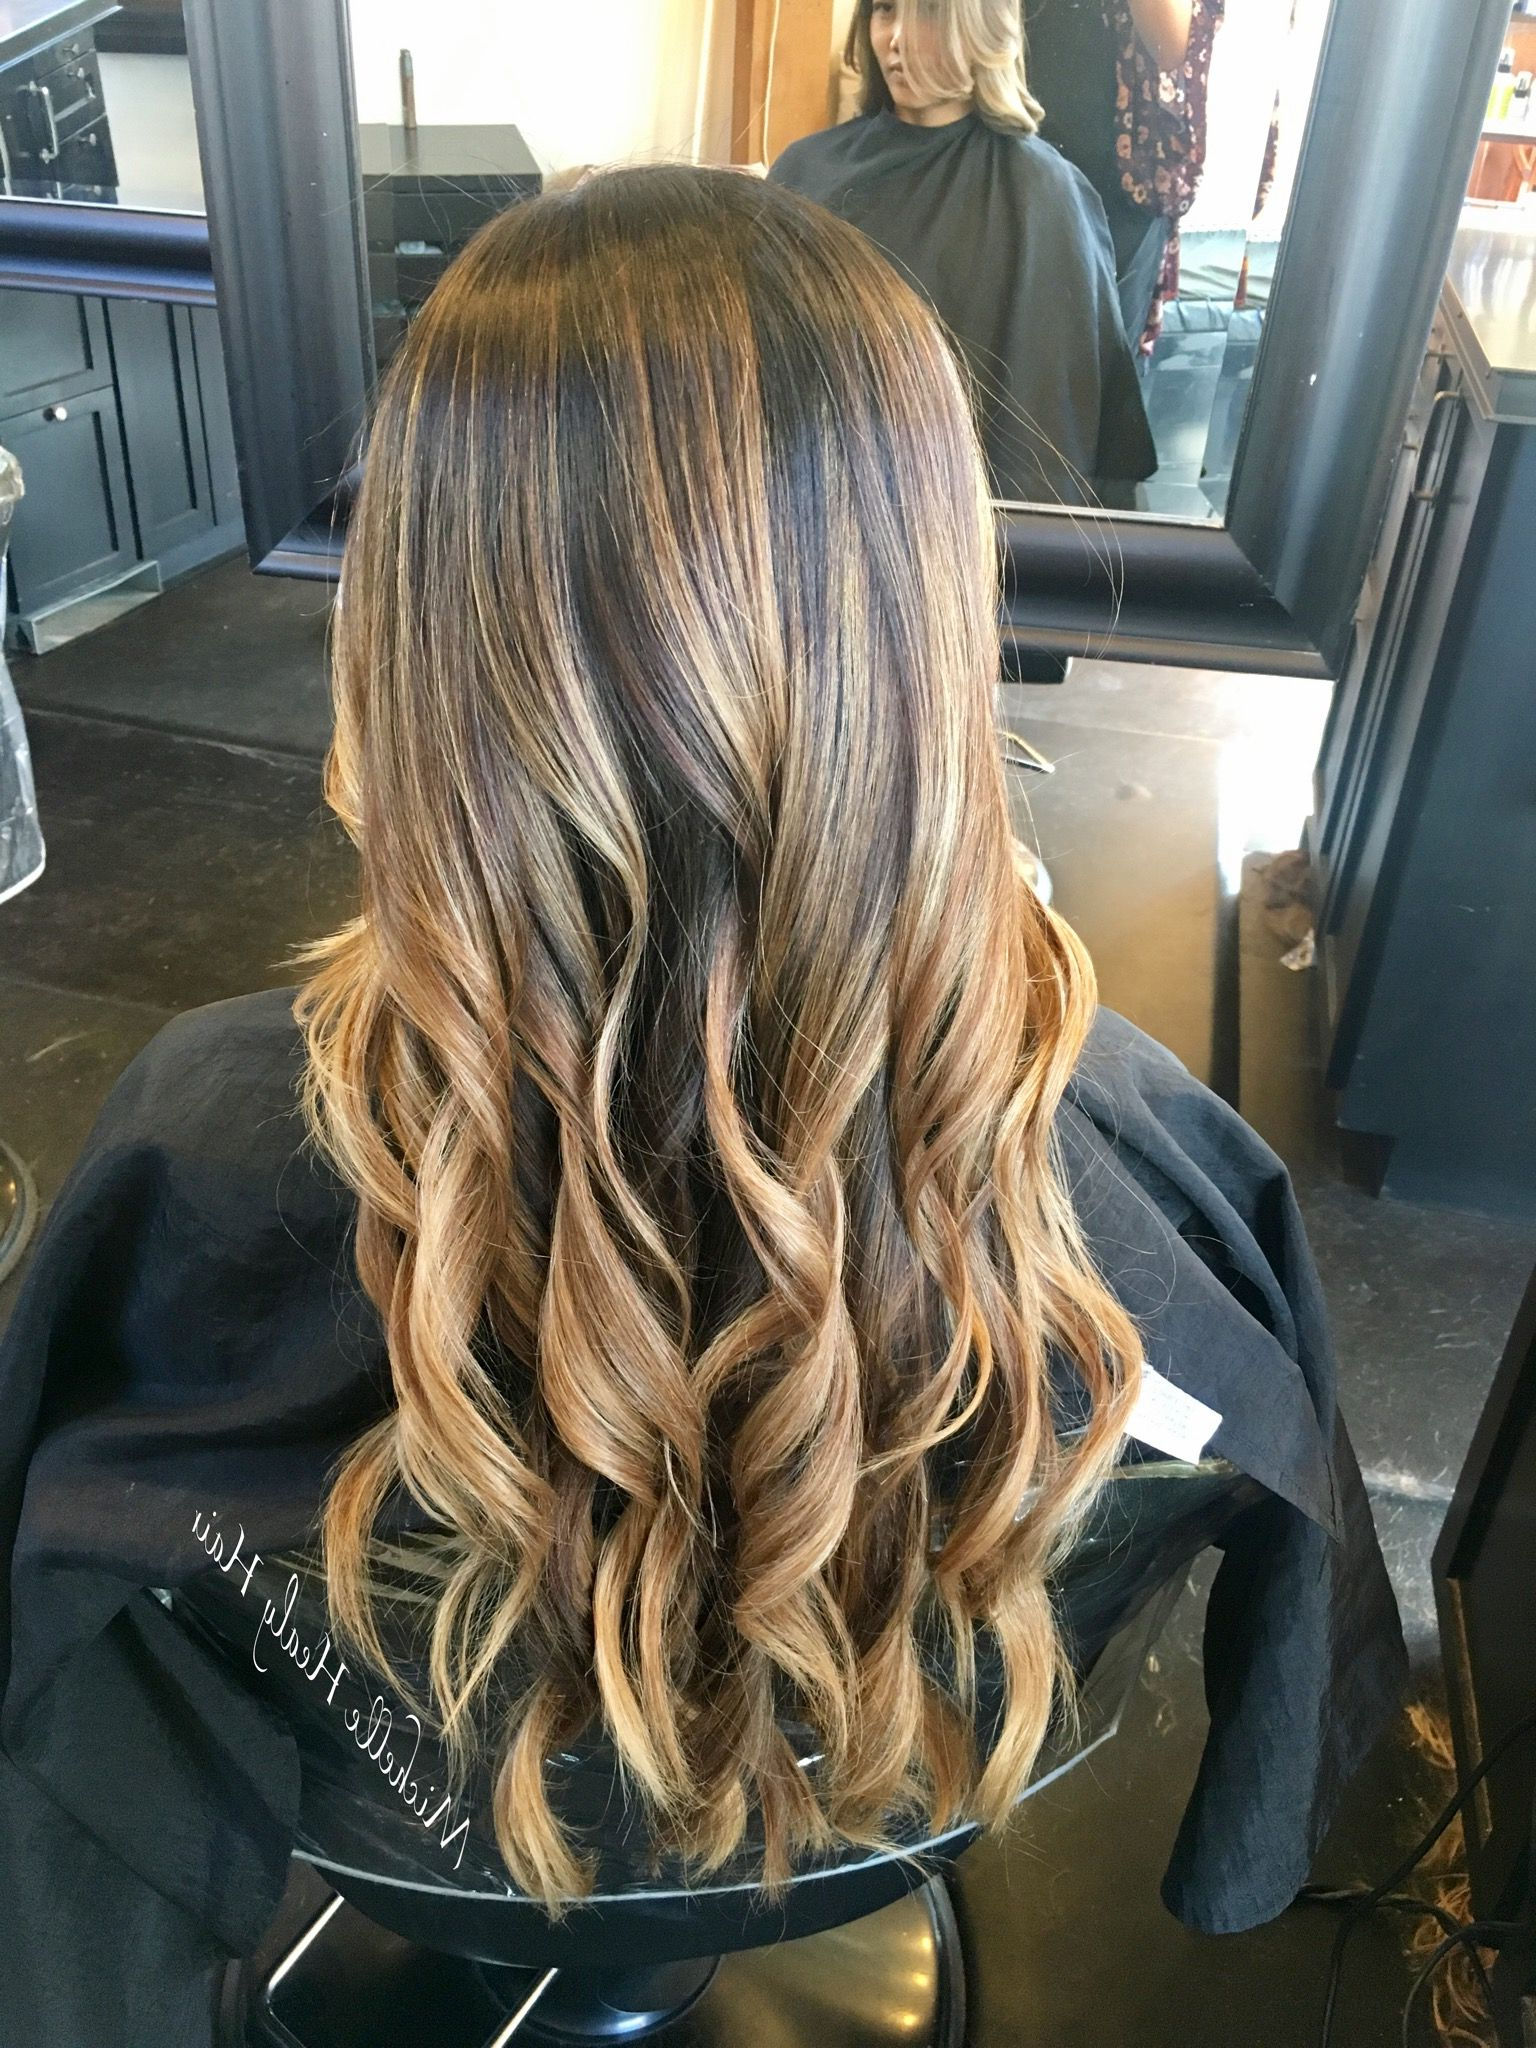 Sun Kissed Highlights On This Beautiful Brunette   Long Pertaining To Short Sun Kissed Hairstyles (View 14 of 20)